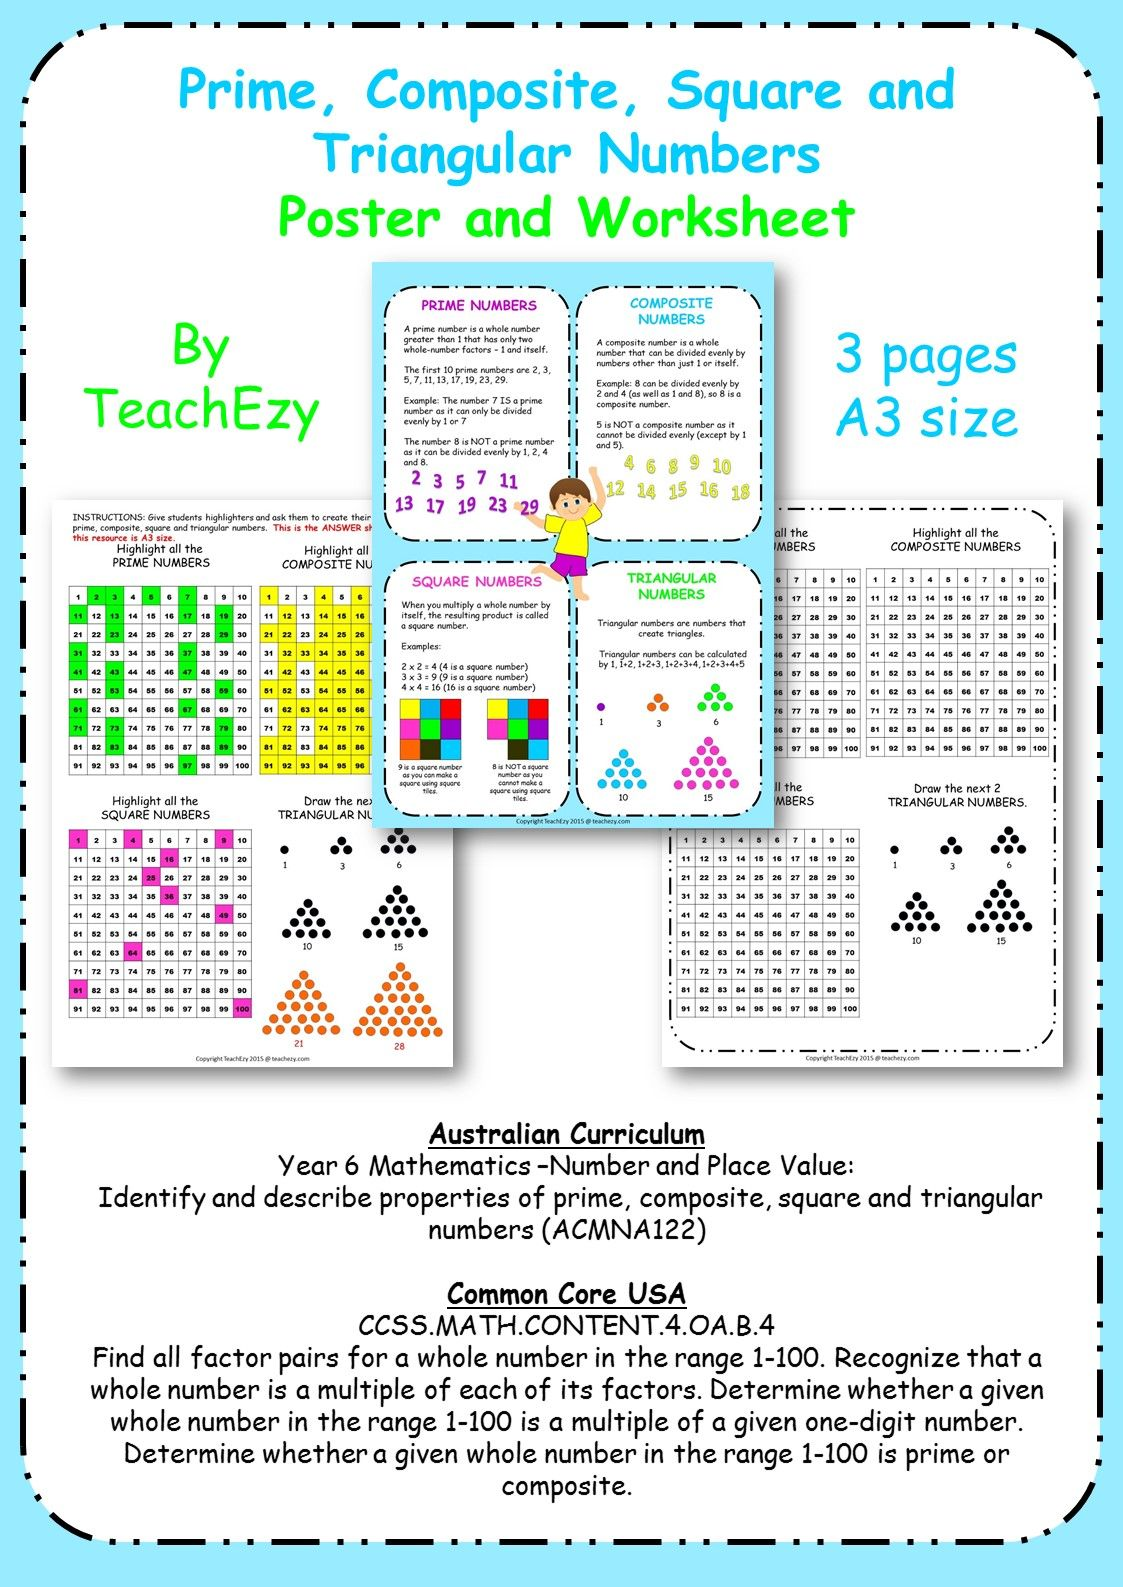 Worksheets Prime Or Composite Worksheet this prime composite poster and worksheet contains a for printing hanging students to make their own